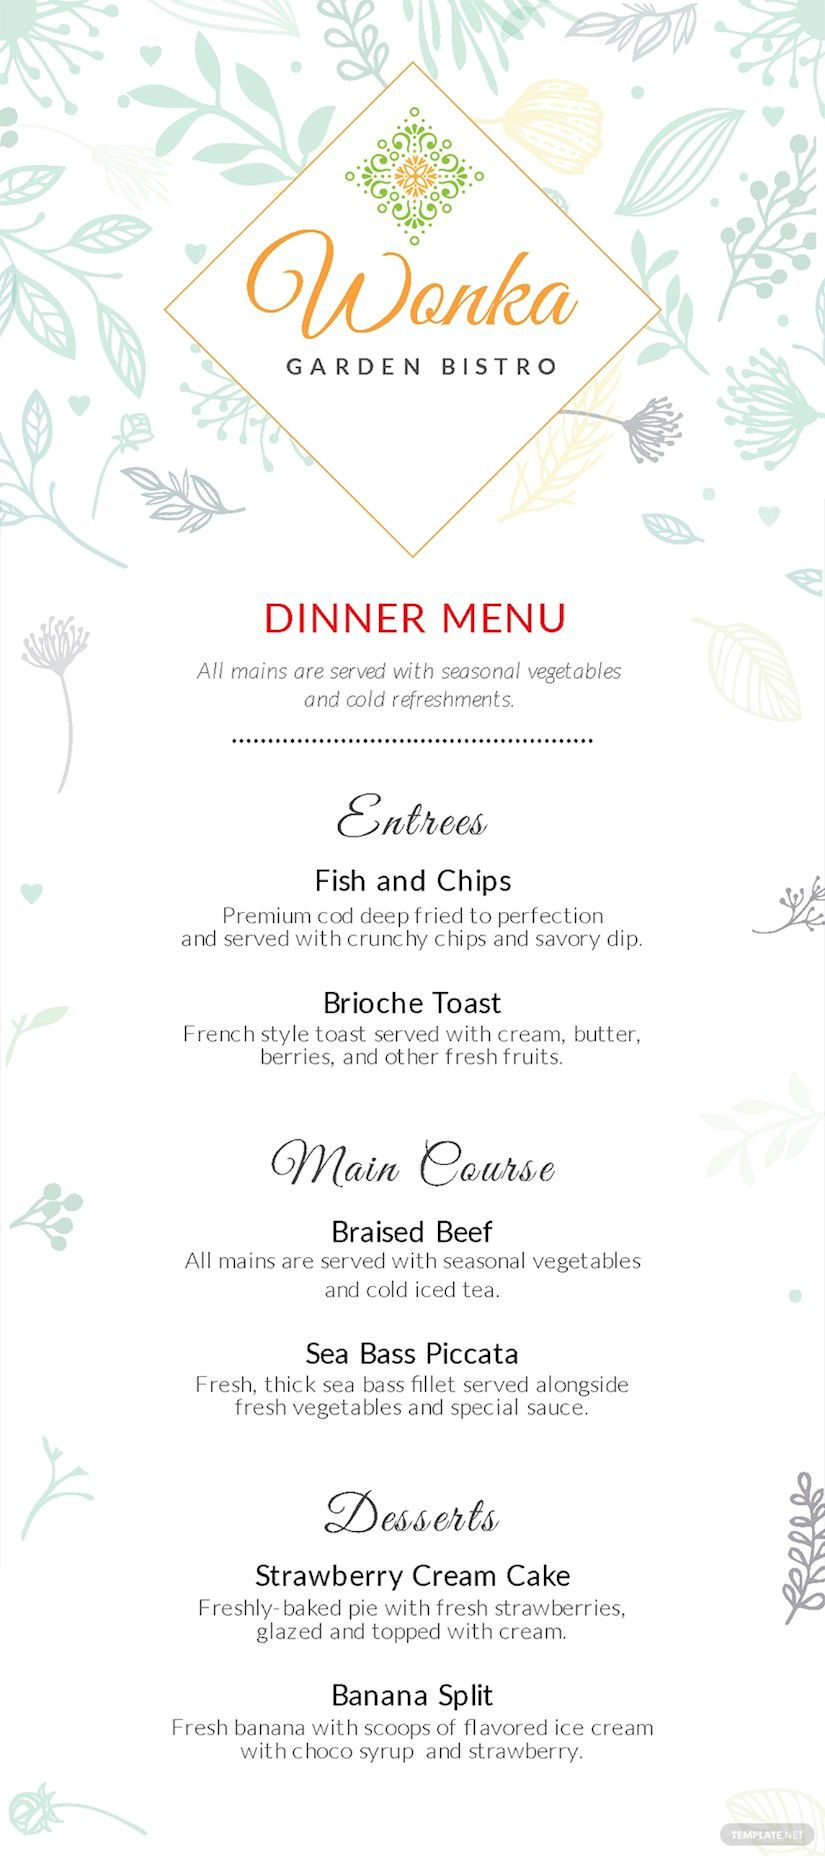 005 Shocking Dinner Party Menu Template High Def  Card Free Italian WordFull